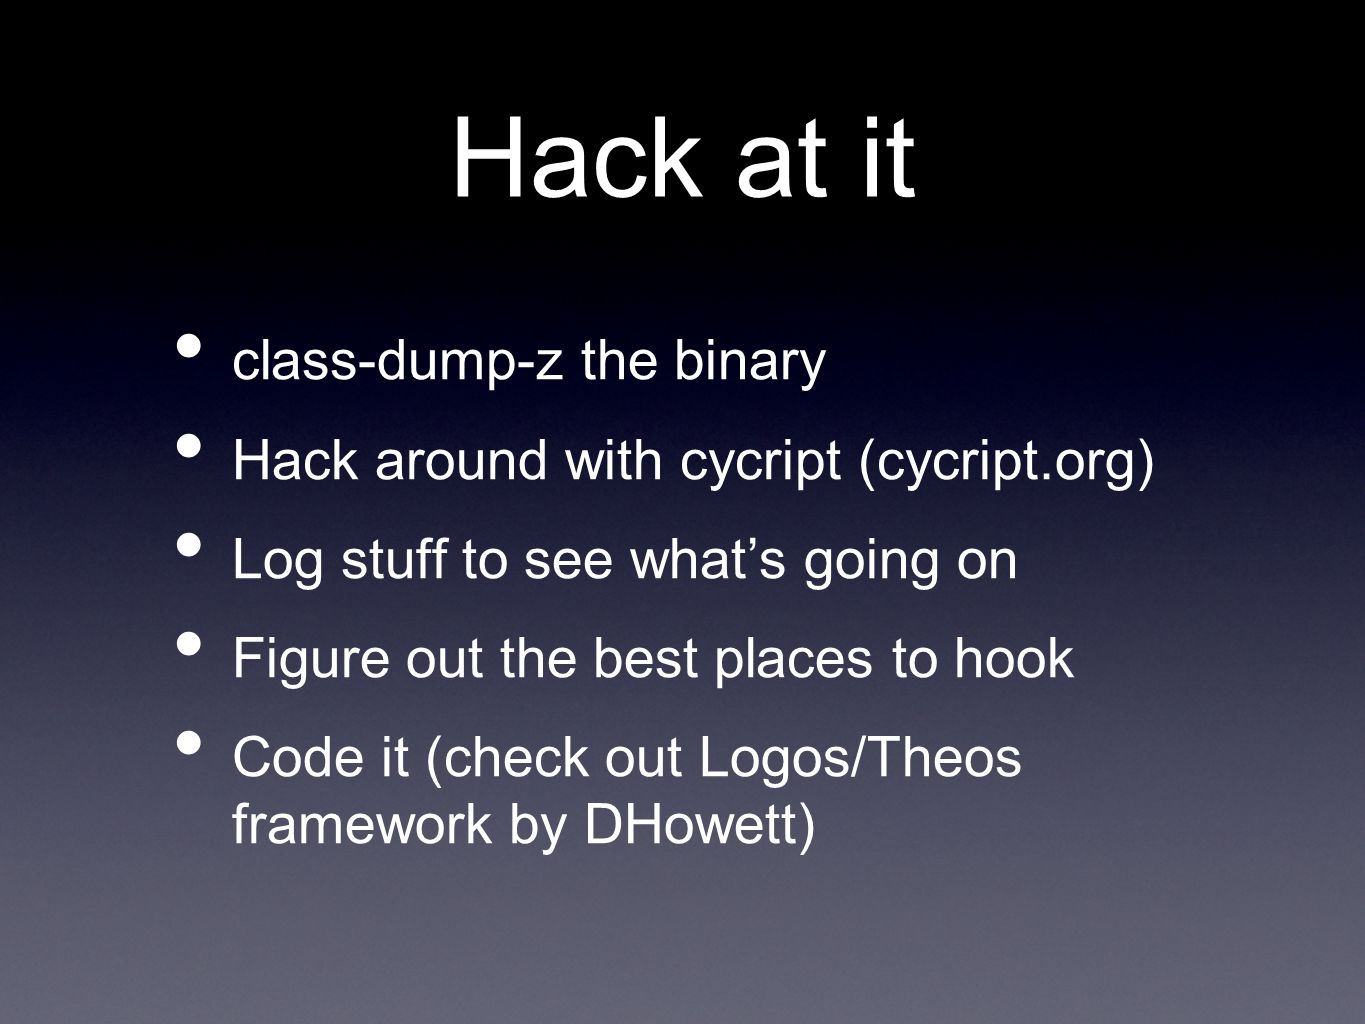 Hack at it class-dump-z the binary Hack around with cycript (cycript.org) Log stuff to see what's going on Figure out the best places to hook Code it (check out Logos/Theos framework by DHowett)